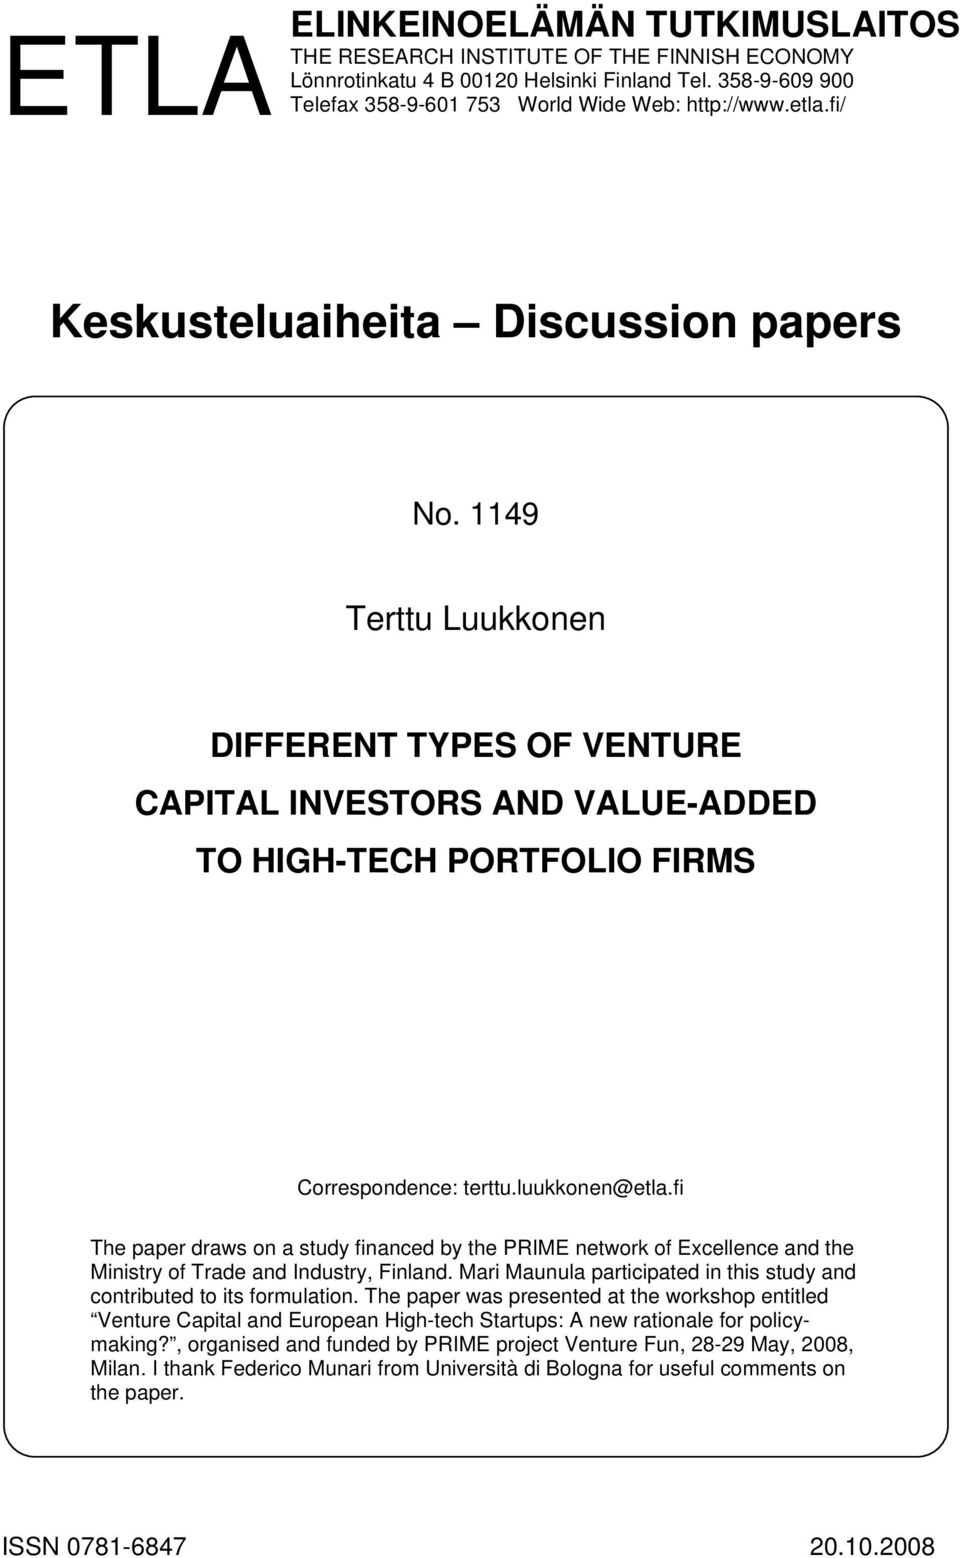 fi The paper draws on a study financed by the PRIME network of Excellence and the Ministry of Trade and Industry, Finland. Mari Maunula participated in this study and contributed to its formulation.